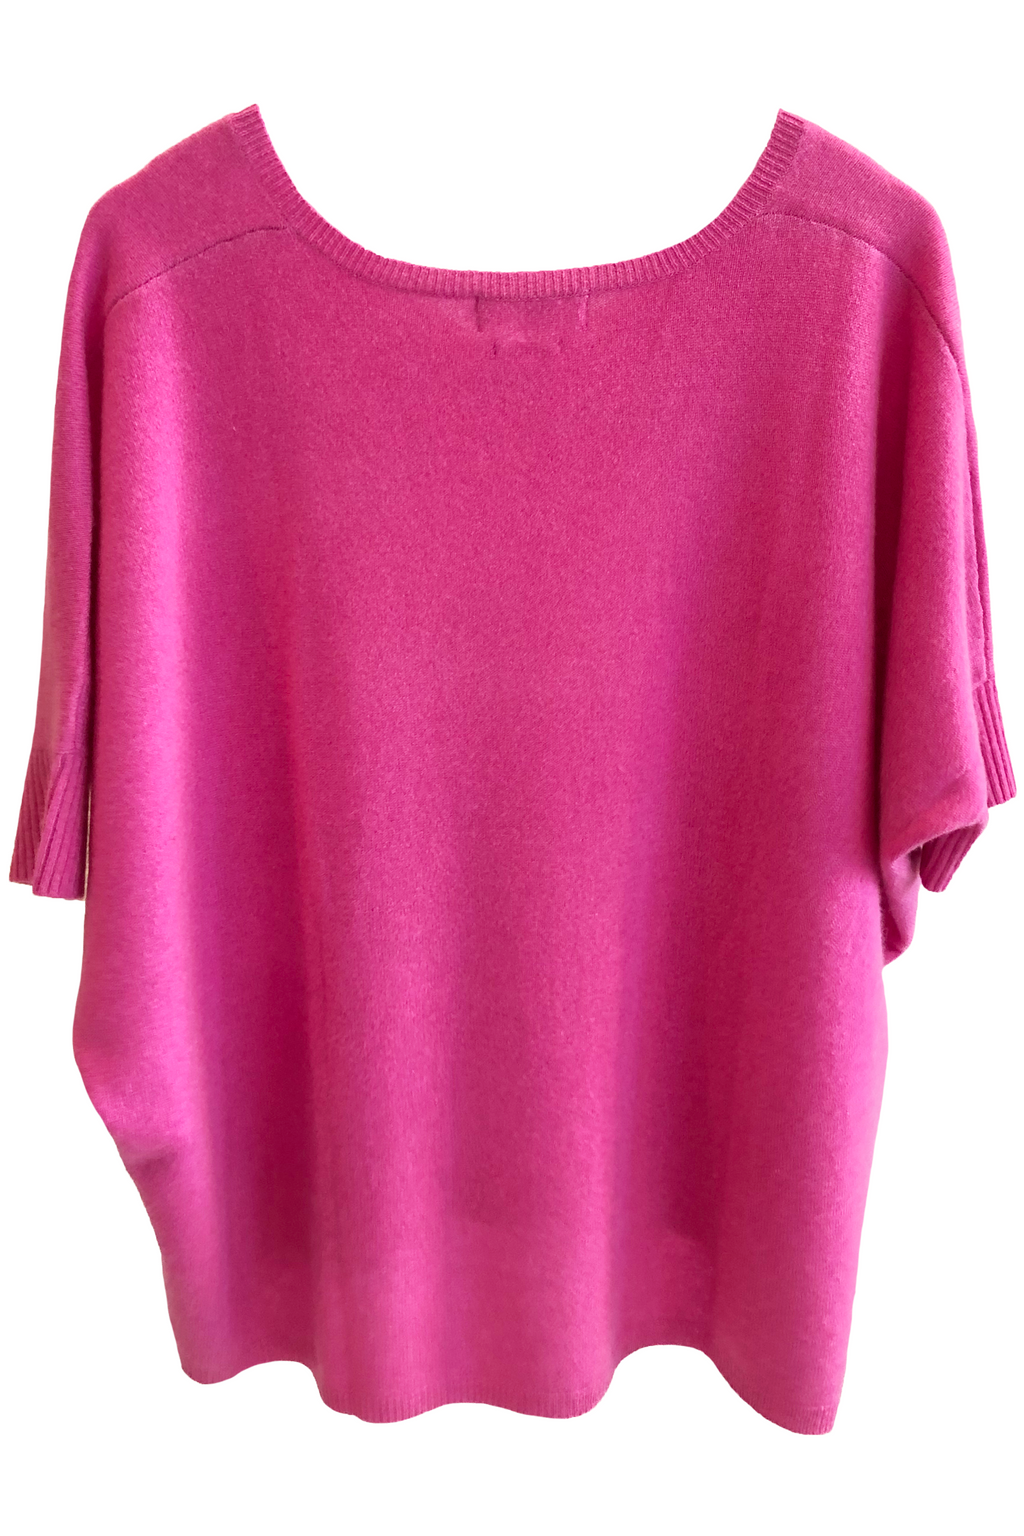 Not Shy Aimee Poncho Sweater in Rose Merveilleux